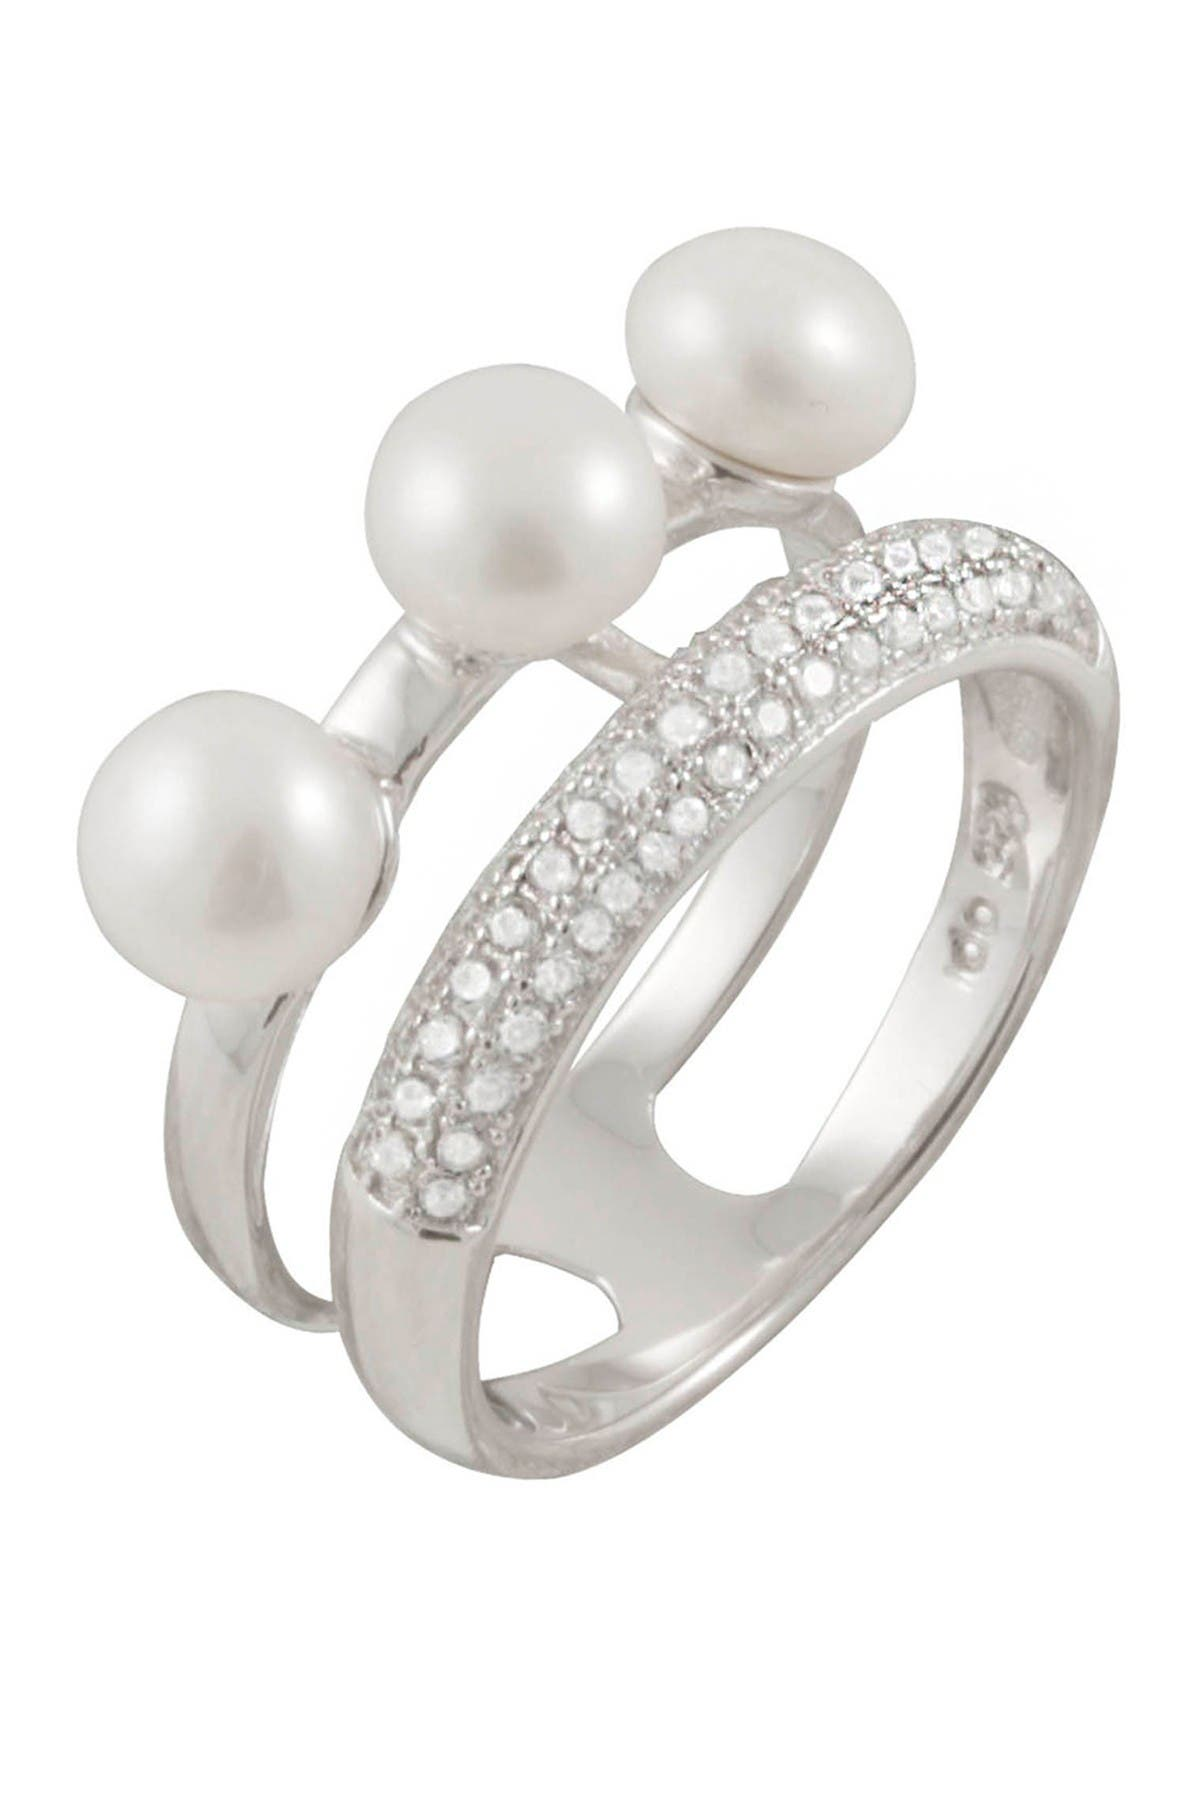 Image of Splendid Pearls White Pearl Ring - Size 7